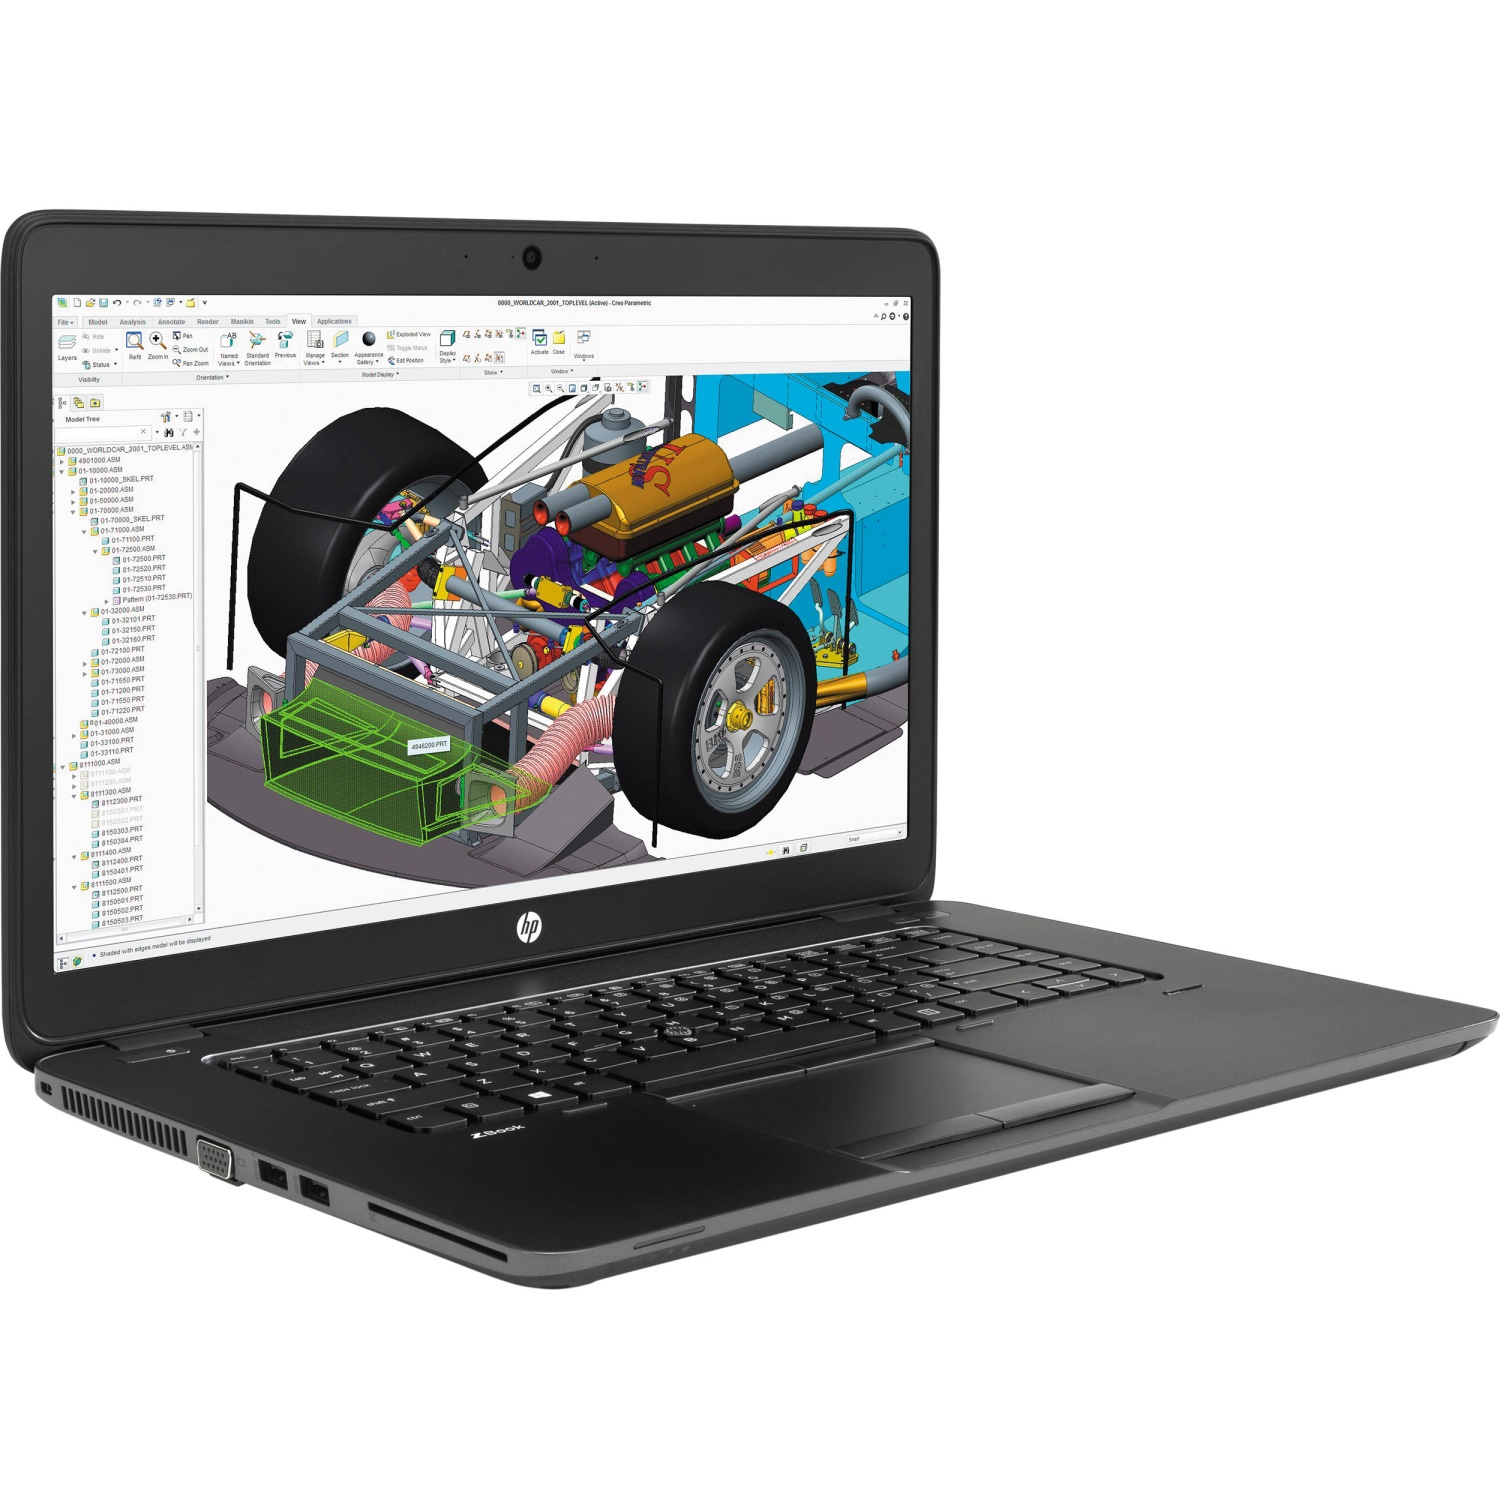 HP Zbook 15u i7-5500U/8GB/256GB Z Turbo Drive PCIe | no Primary/AMD Firepro M4170 1GB /15,6'' FHD/Win 10 Pro + Win 7 Pro